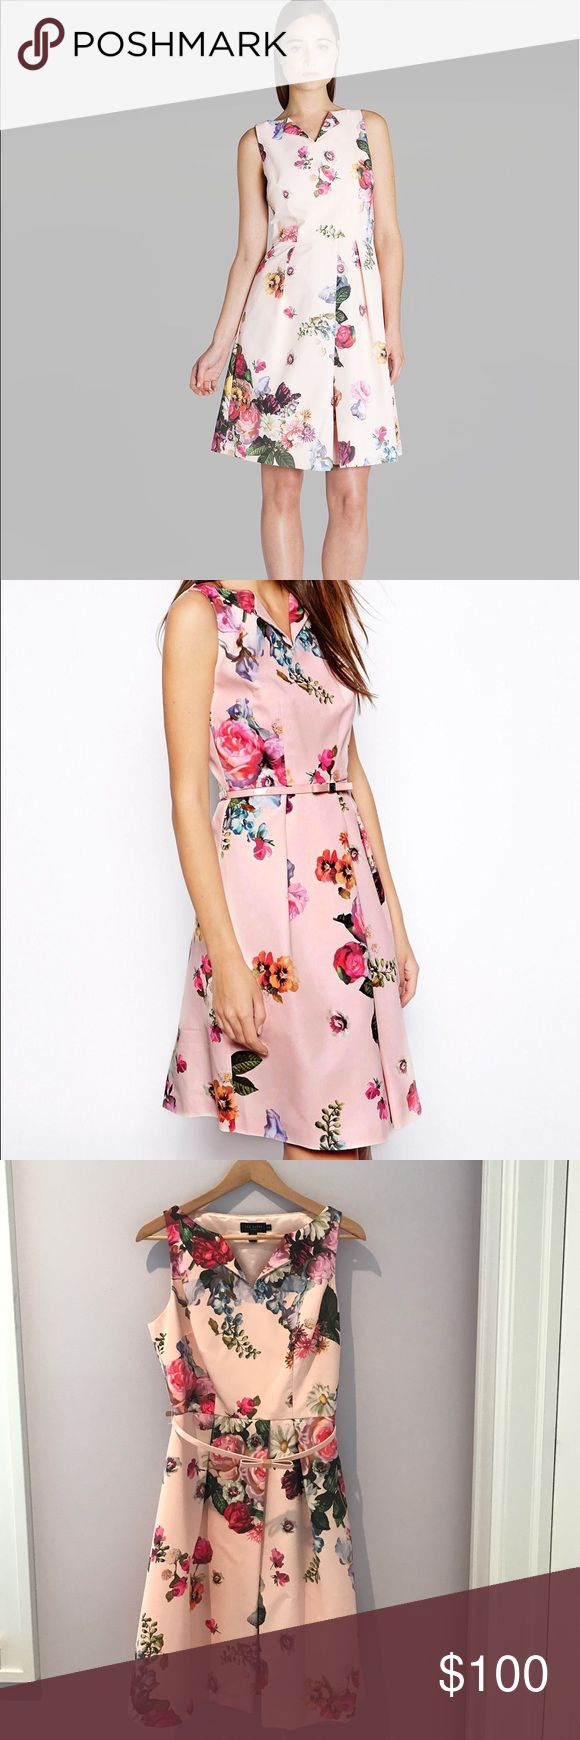 Ted Baker Devon Floral Dress This is the perfect dress for summer weddings, baby showers, or any upcoming celebrations! Pair with a jean jacket to dress down or throw on some pumps for the perfect dressy occasion outfit. Size 3 is the same as a US 8 Ted Baker London Dresses Wedding